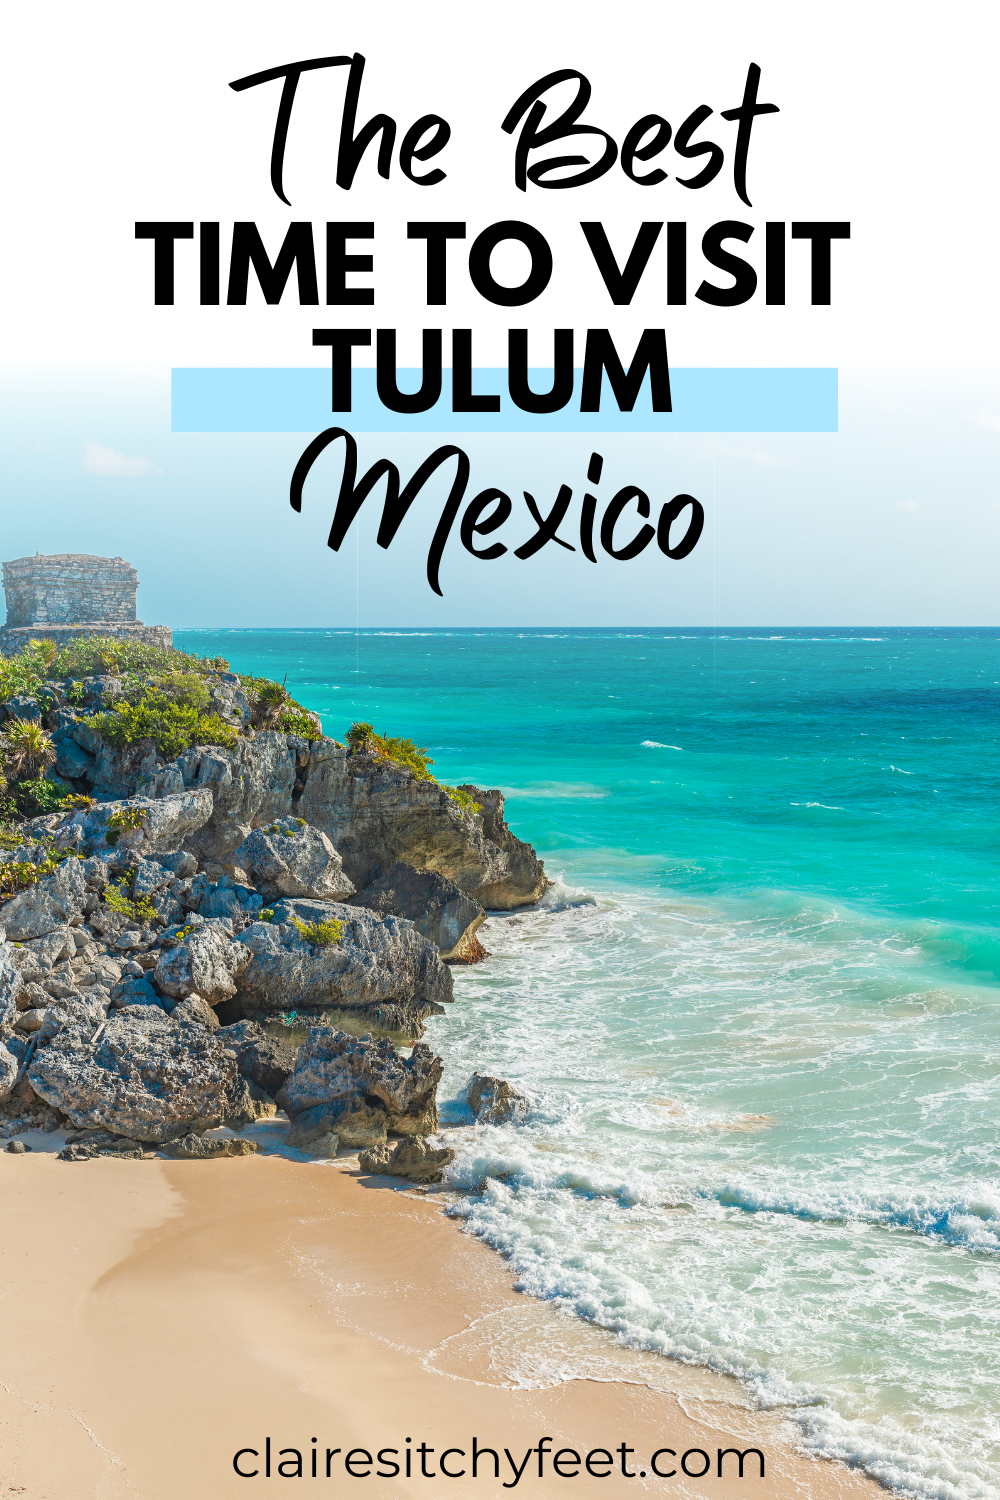 When Is The Best Time To Visit Tulum In Mexico?